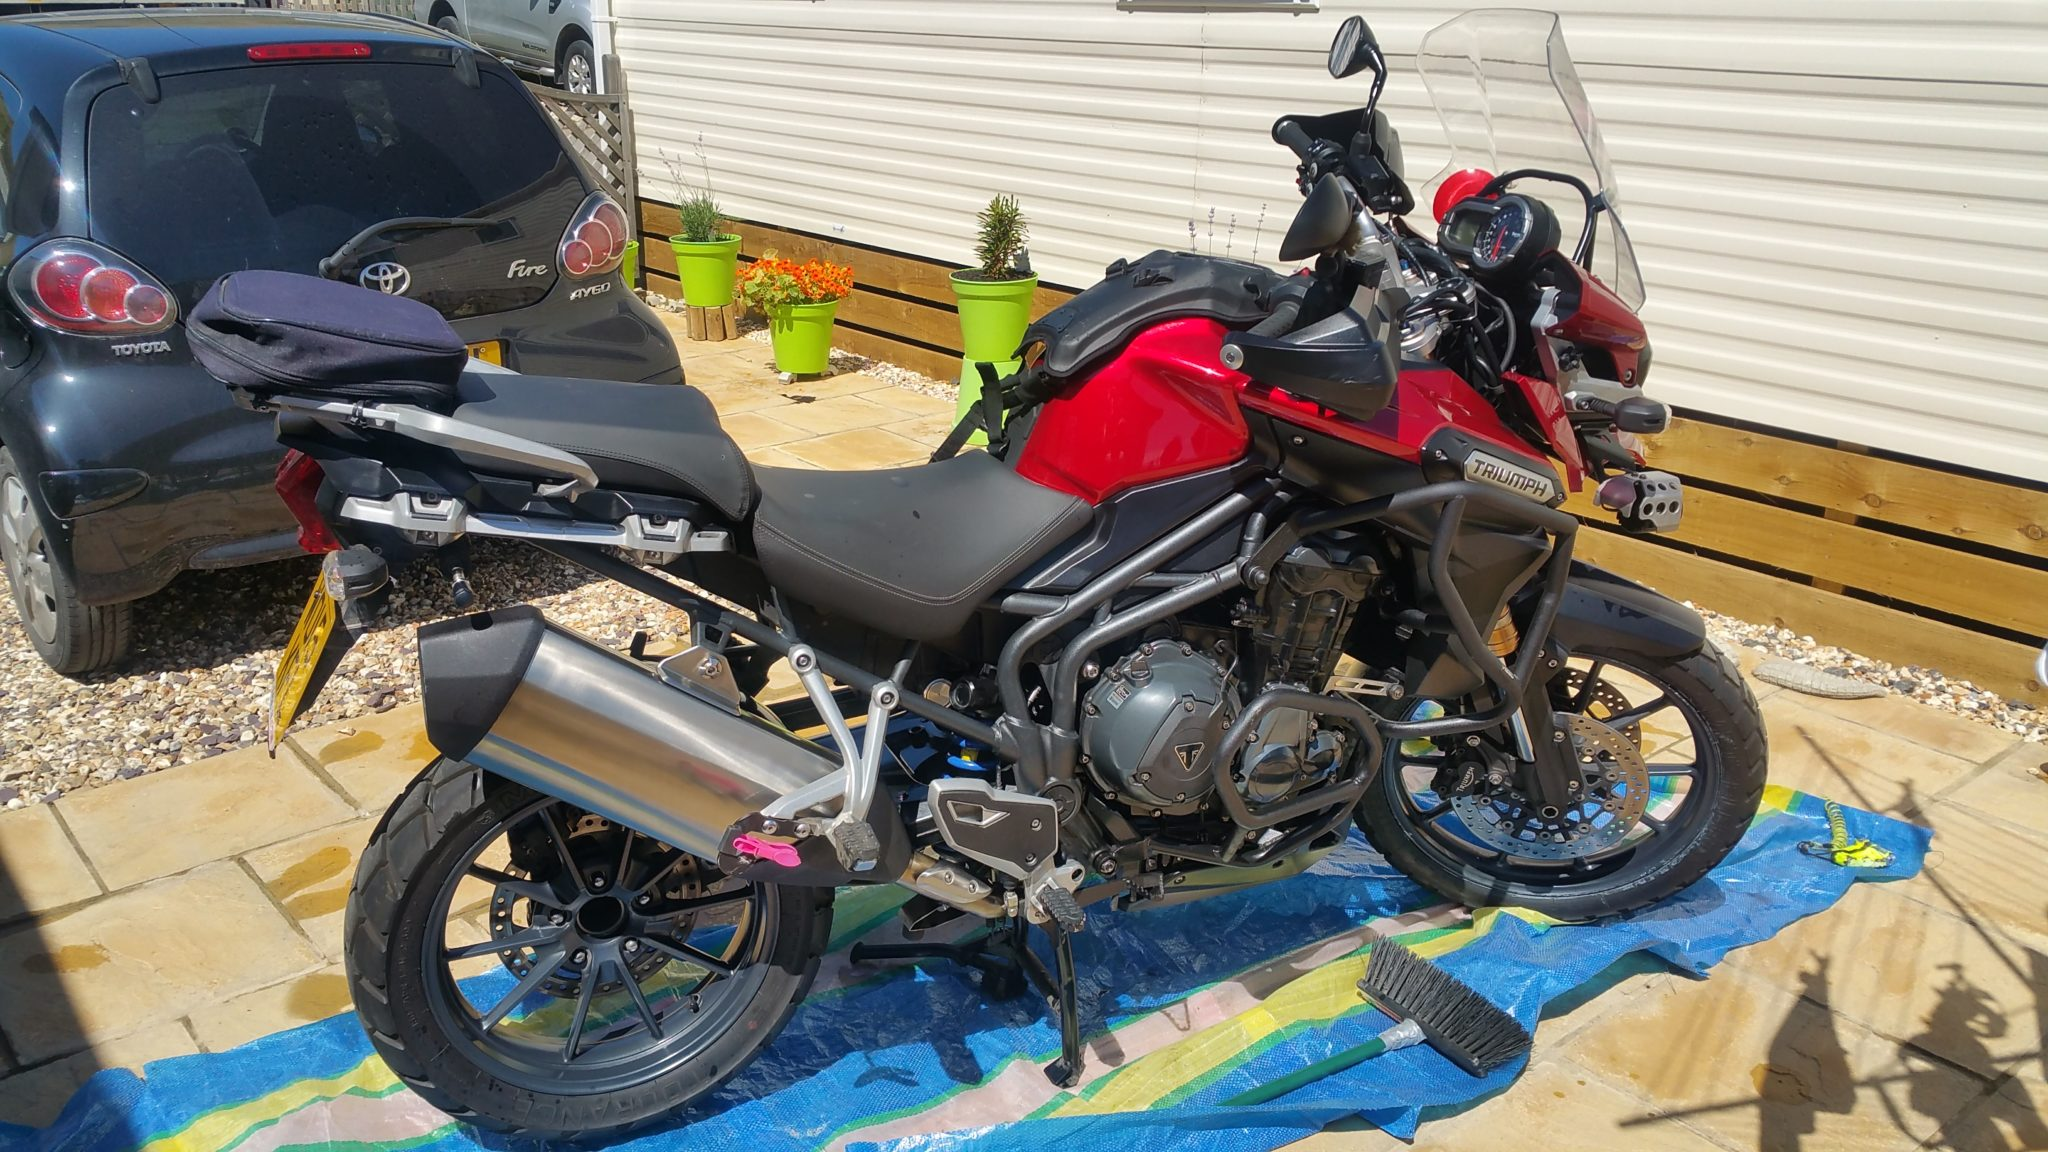 Keith Houselander – Triumph Tiger 1200 Explorer